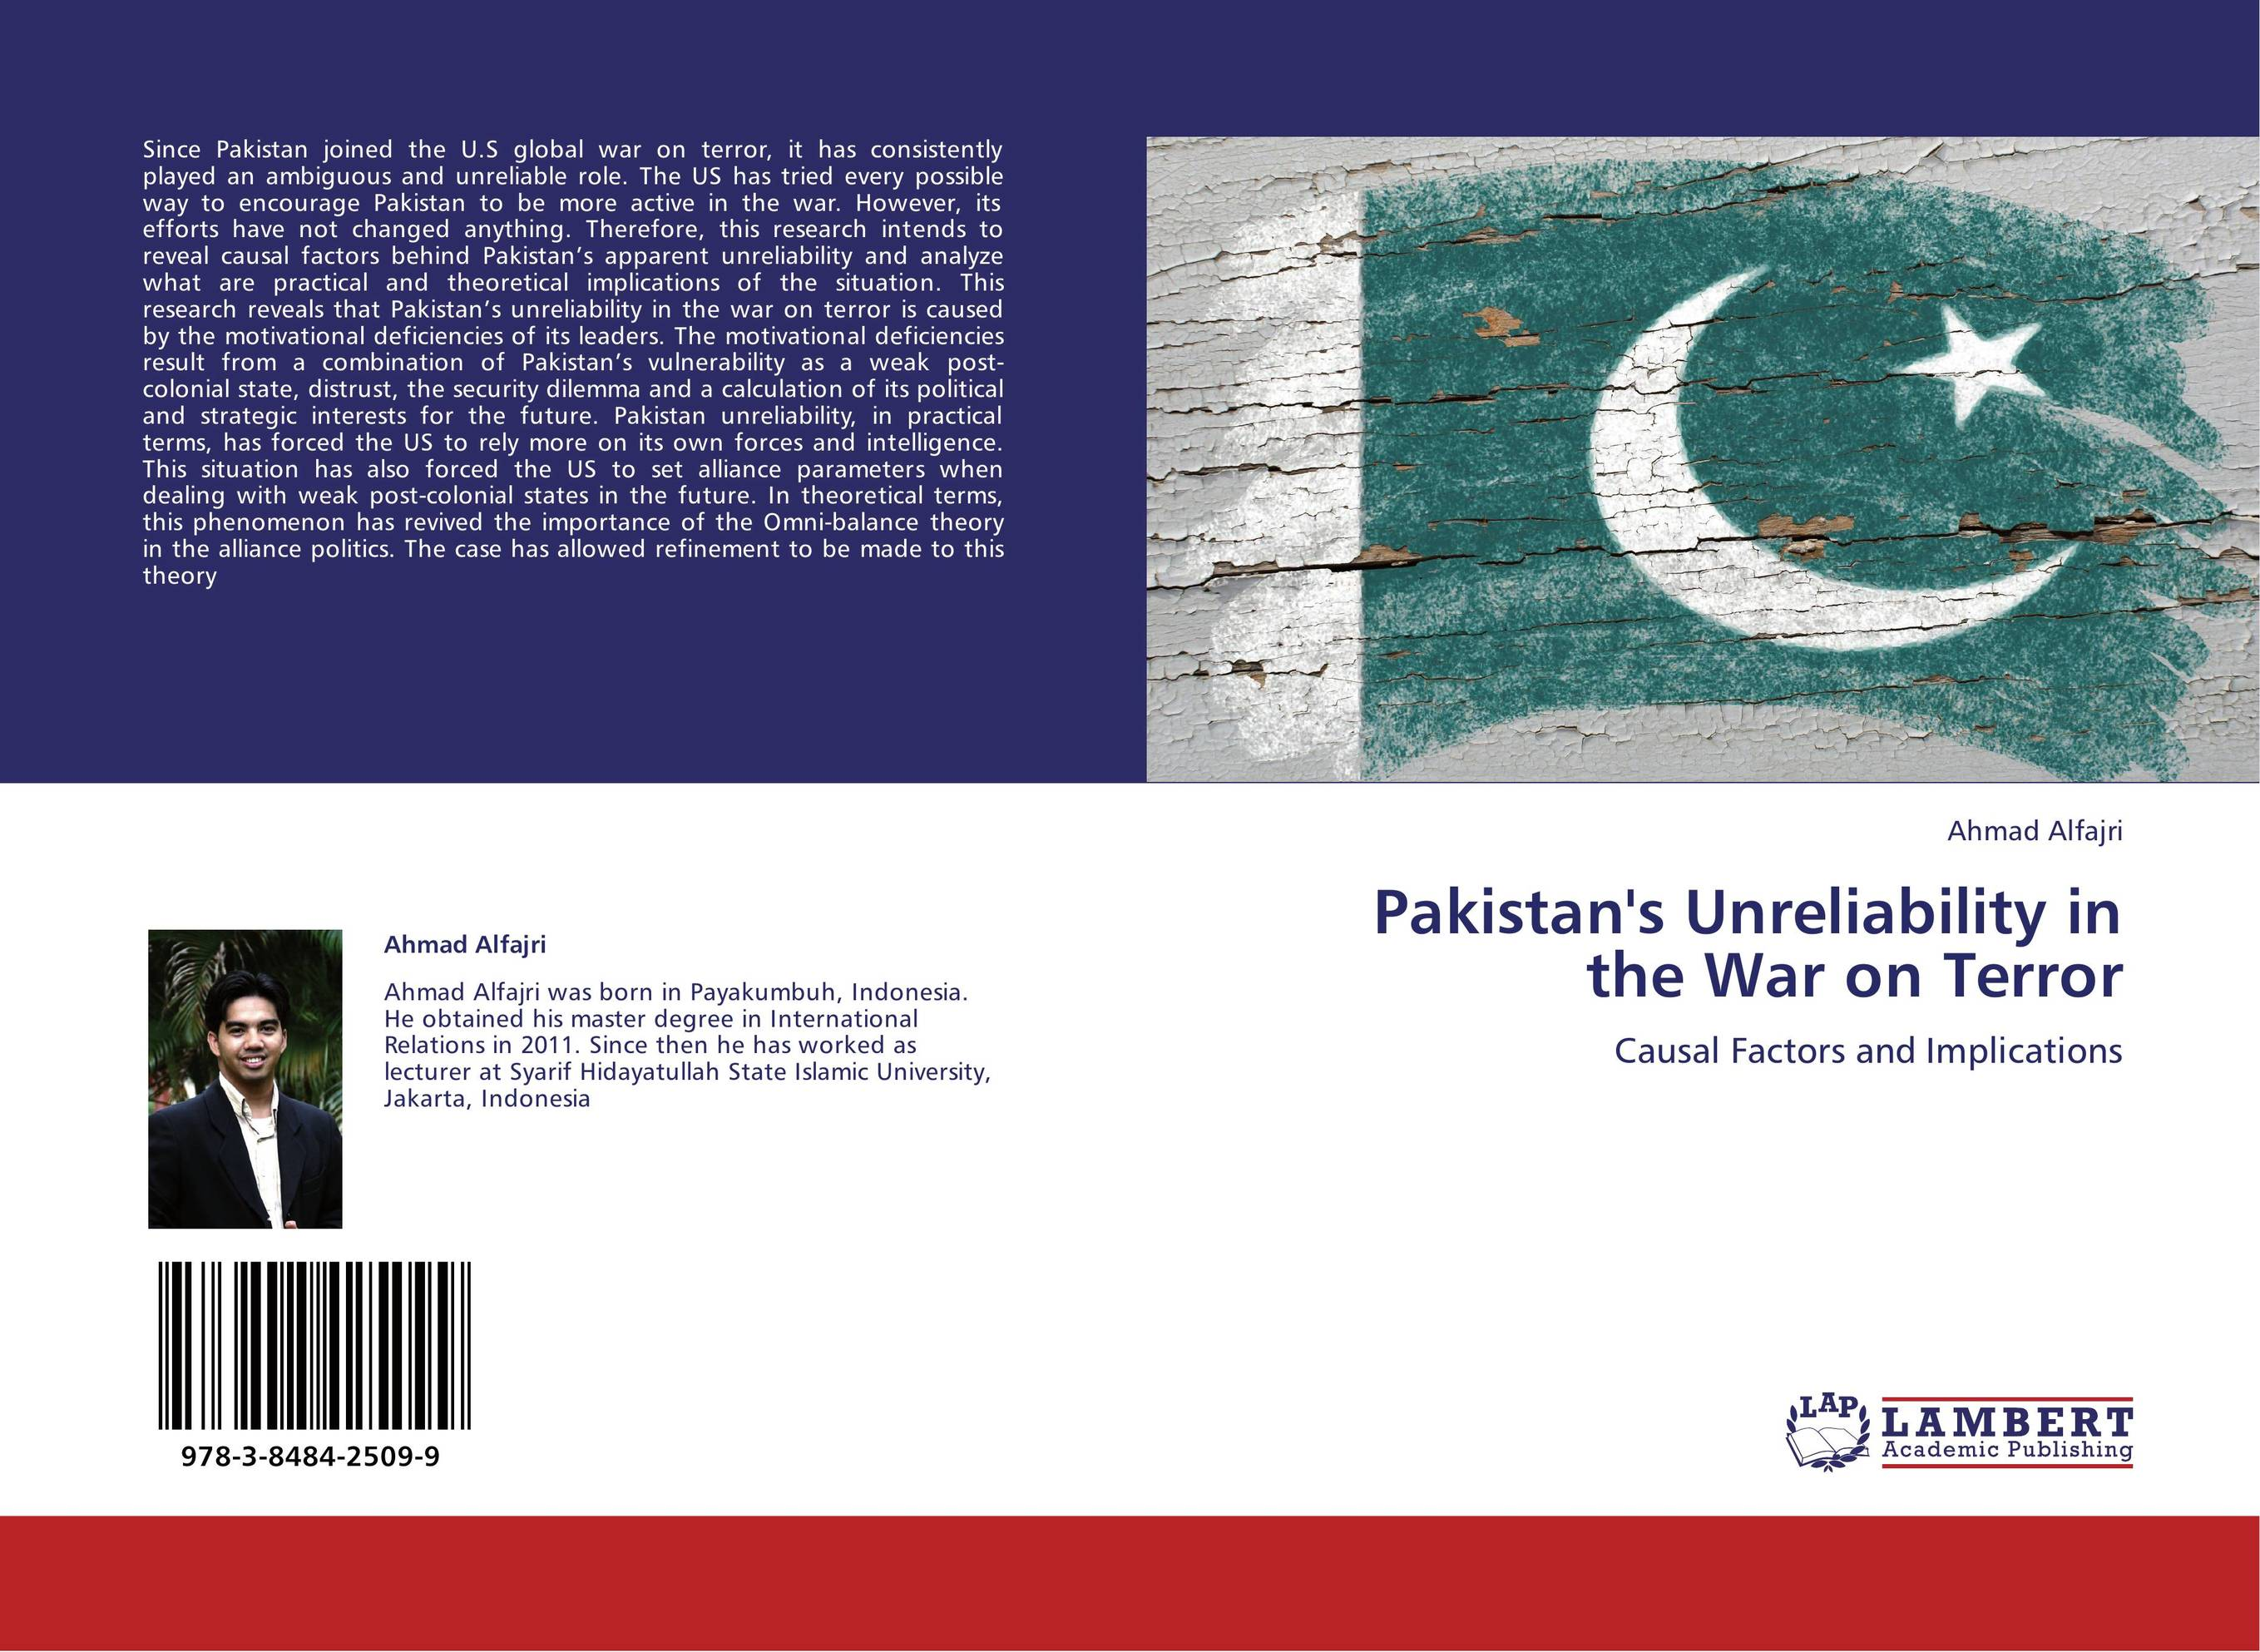 implications of war on terrorism on public relations essay Essay on terrorism in pakistan: of being the epicentre of the war on terror have been has occurred due to terrorism social relations.